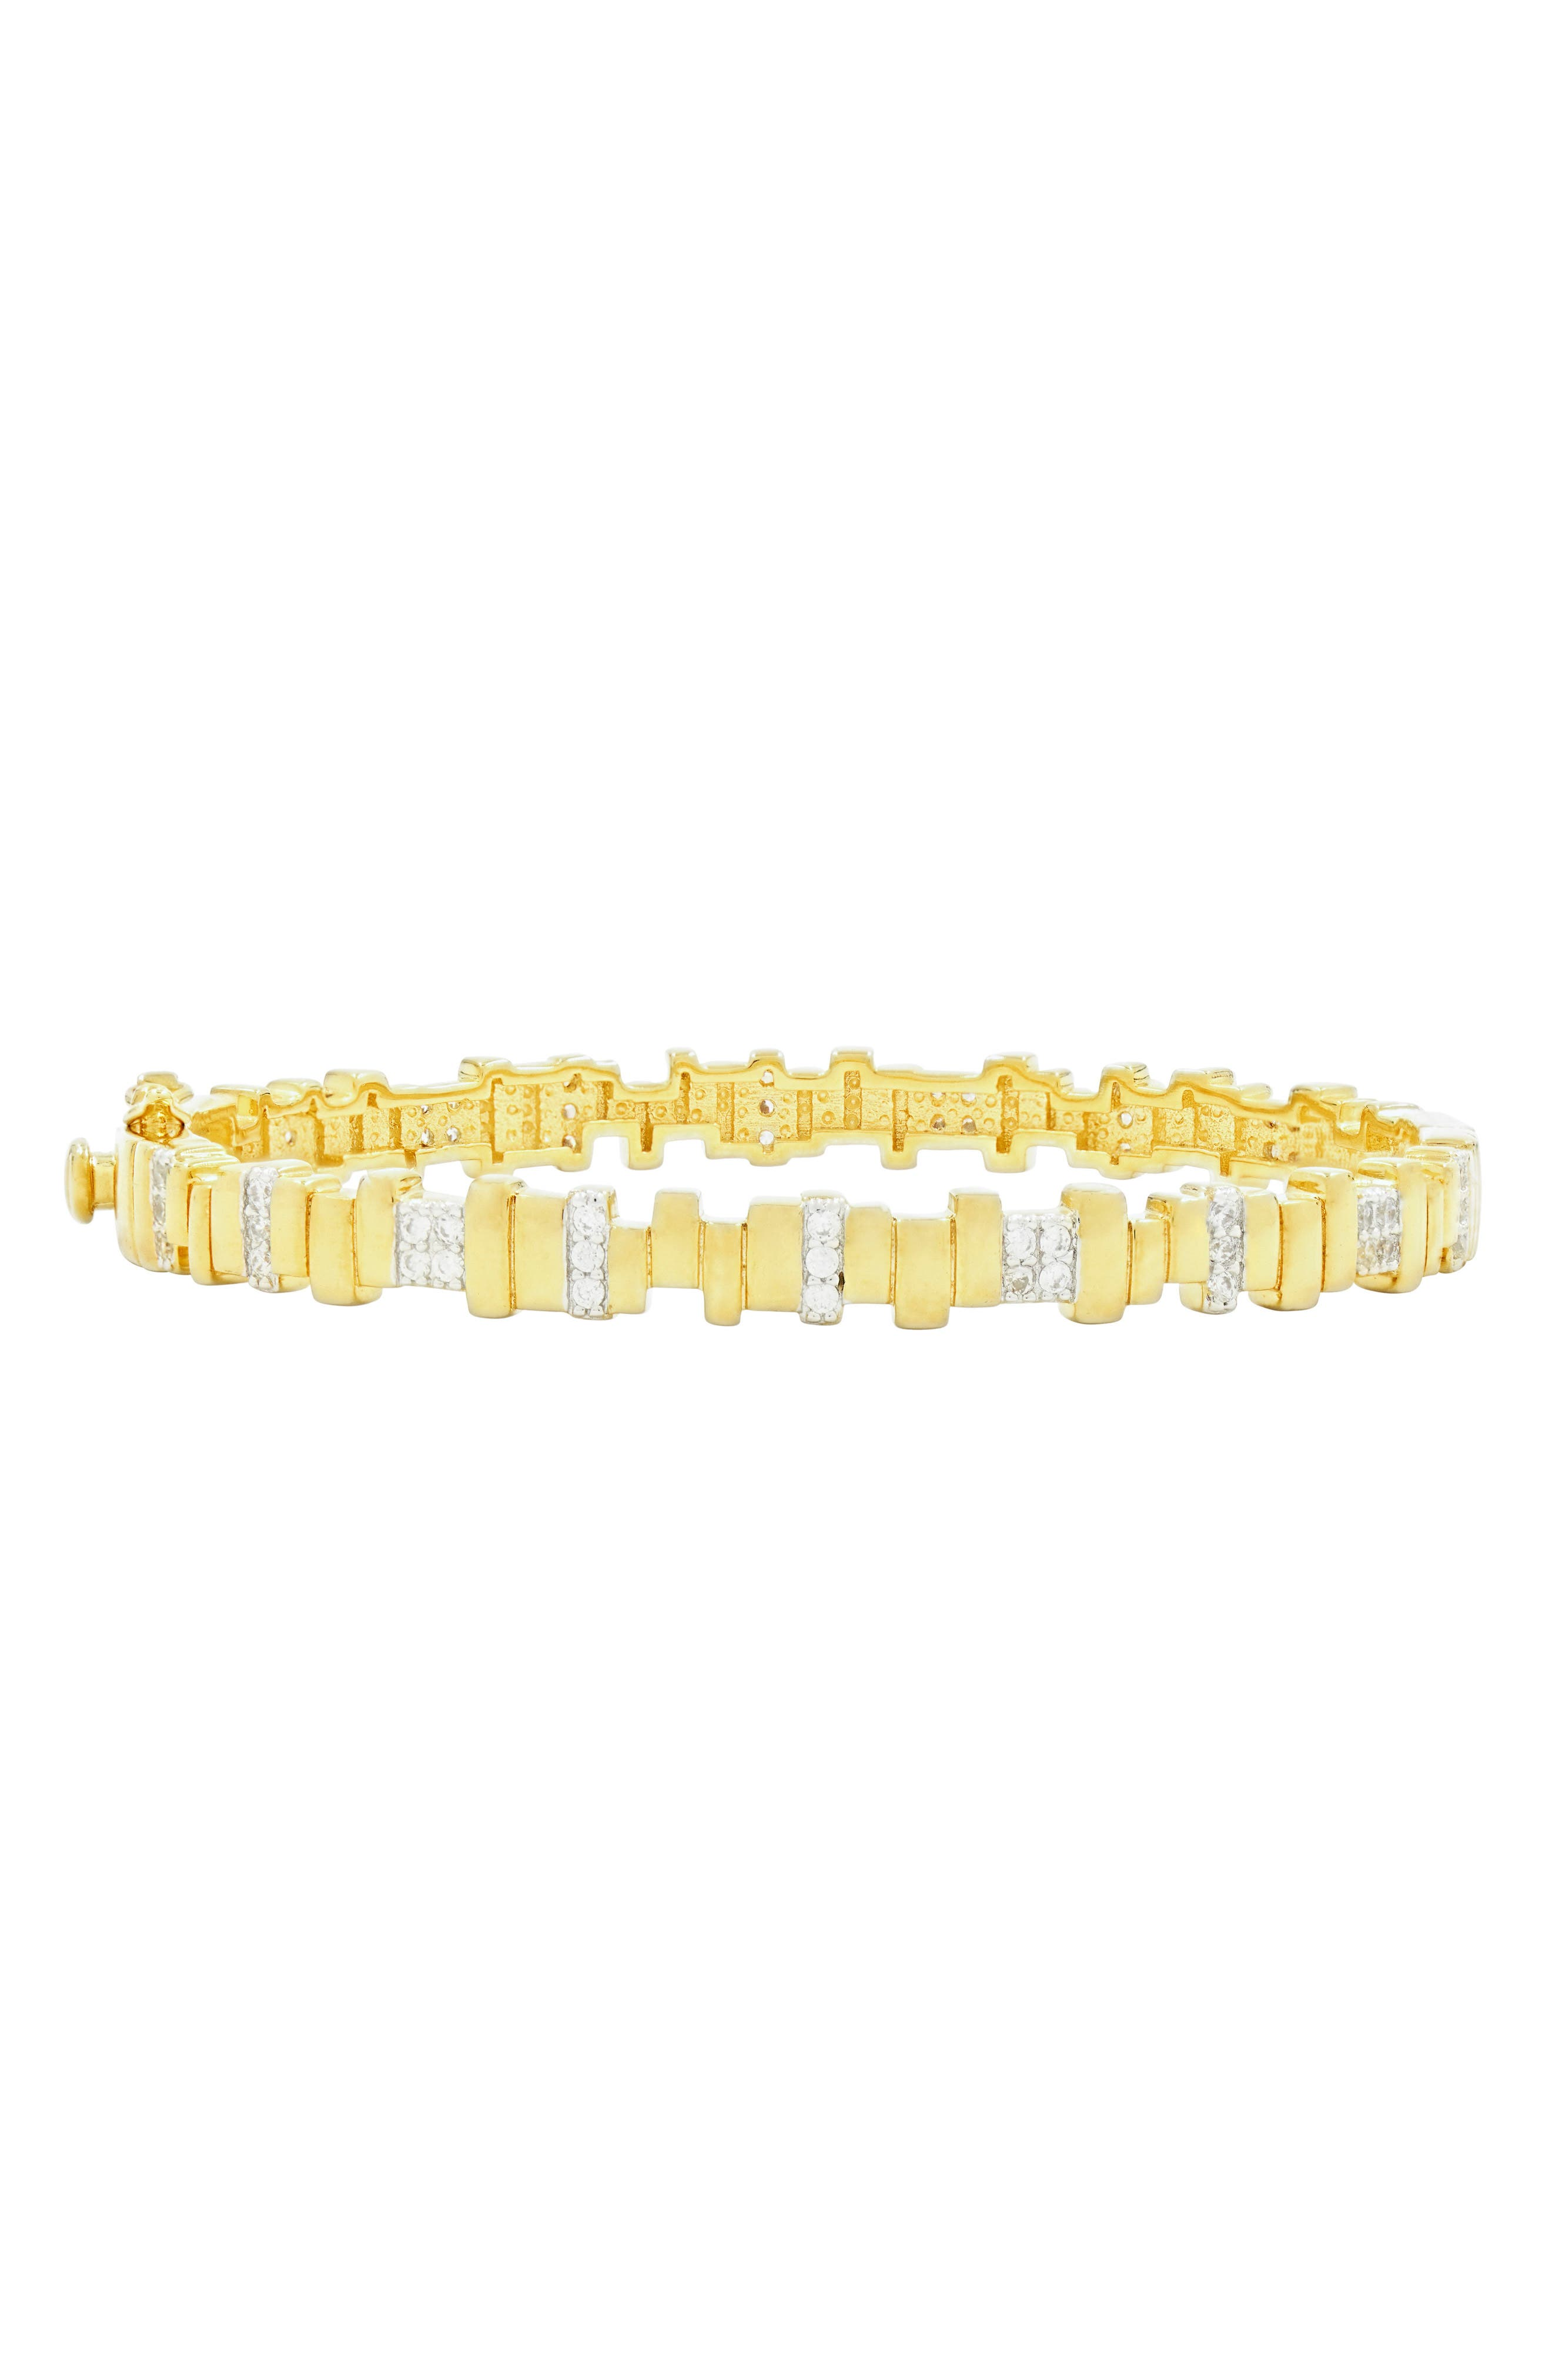 Radiance Cubic Zirconia Bangle,                             Main thumbnail 1, color,                             Silver/ Gold